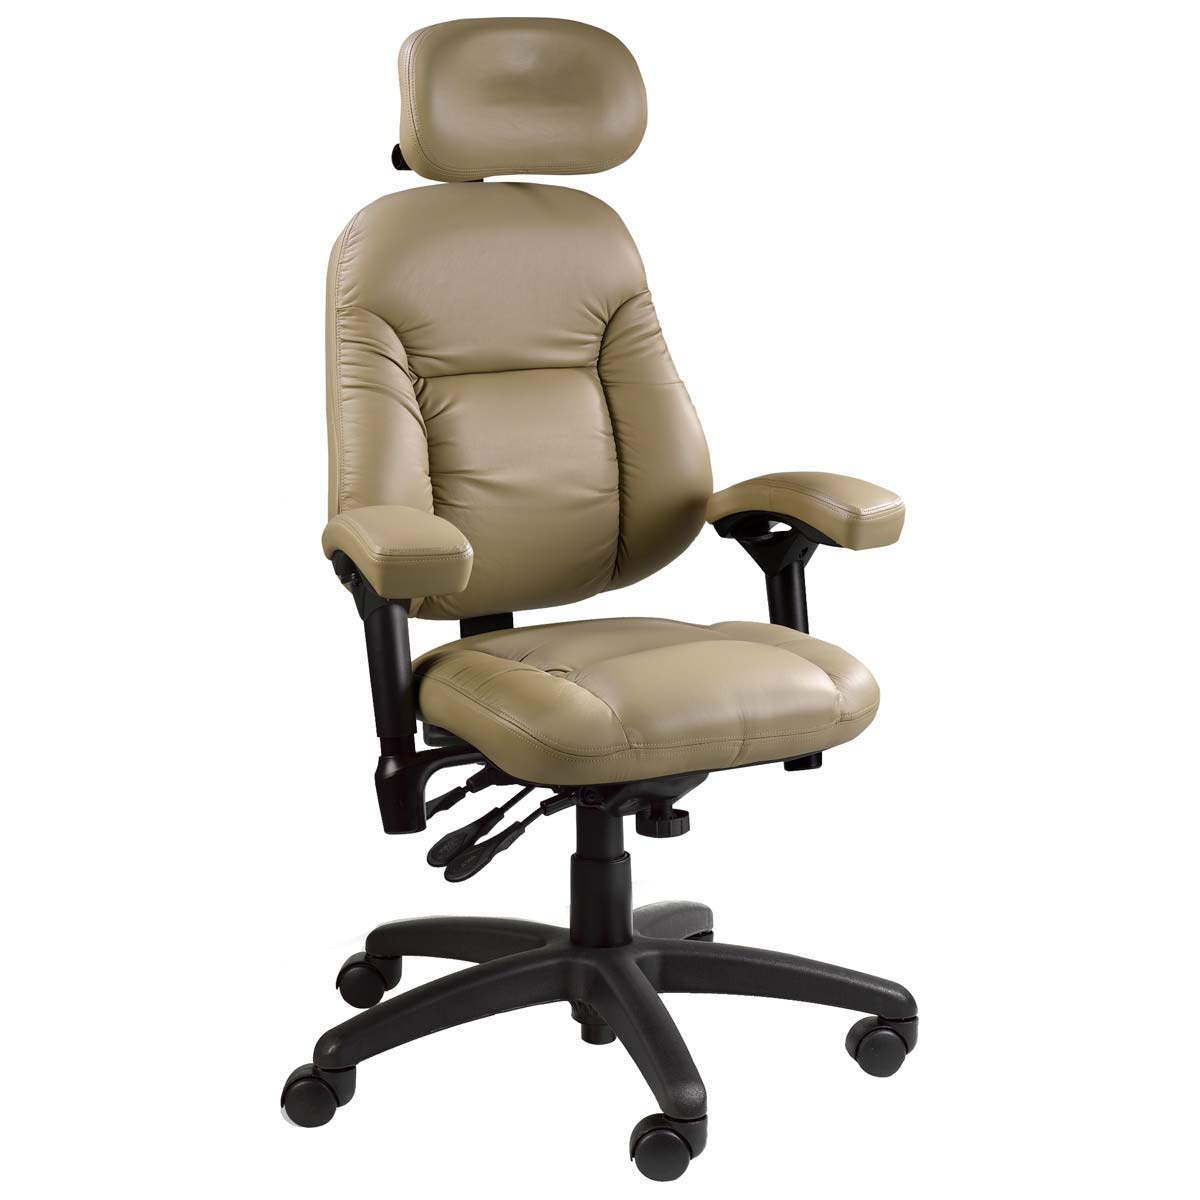 Petite Chairs Shop Bodybilt 3407 High Back Petite Executive Chairs